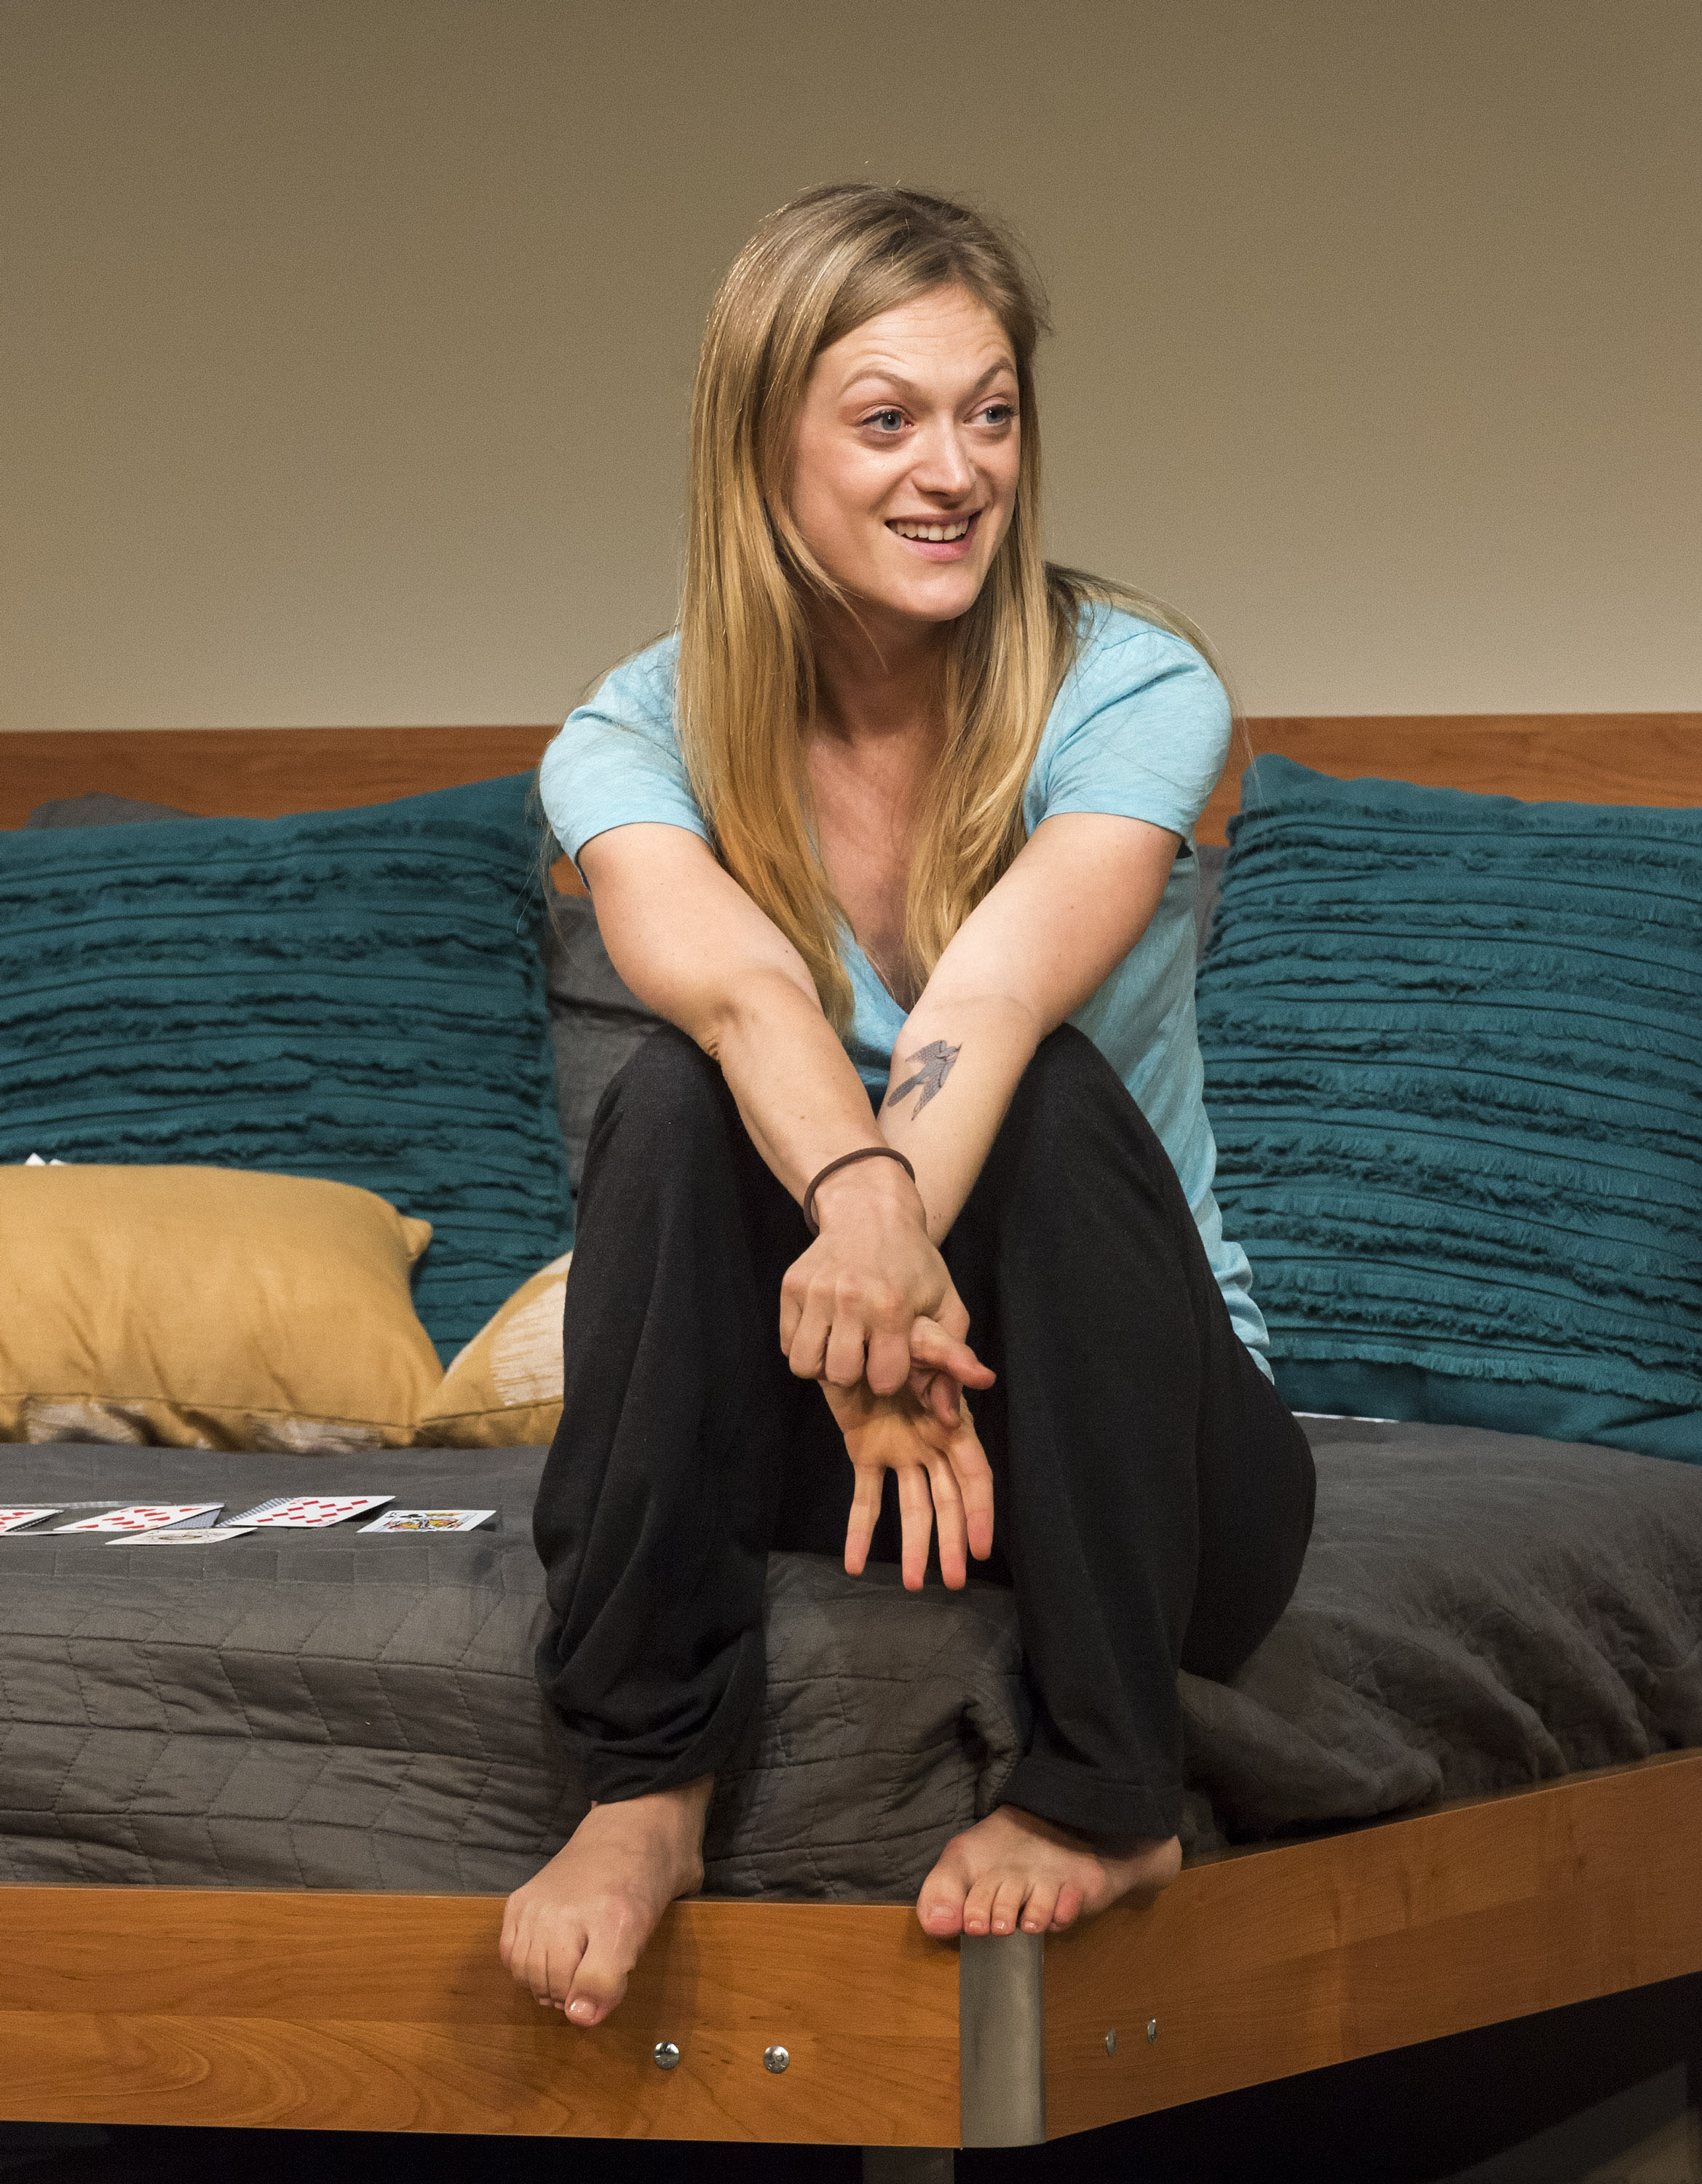 Marin Ireland nude (32 foto and video), Pussy, Fappening, Feet, braless 2020